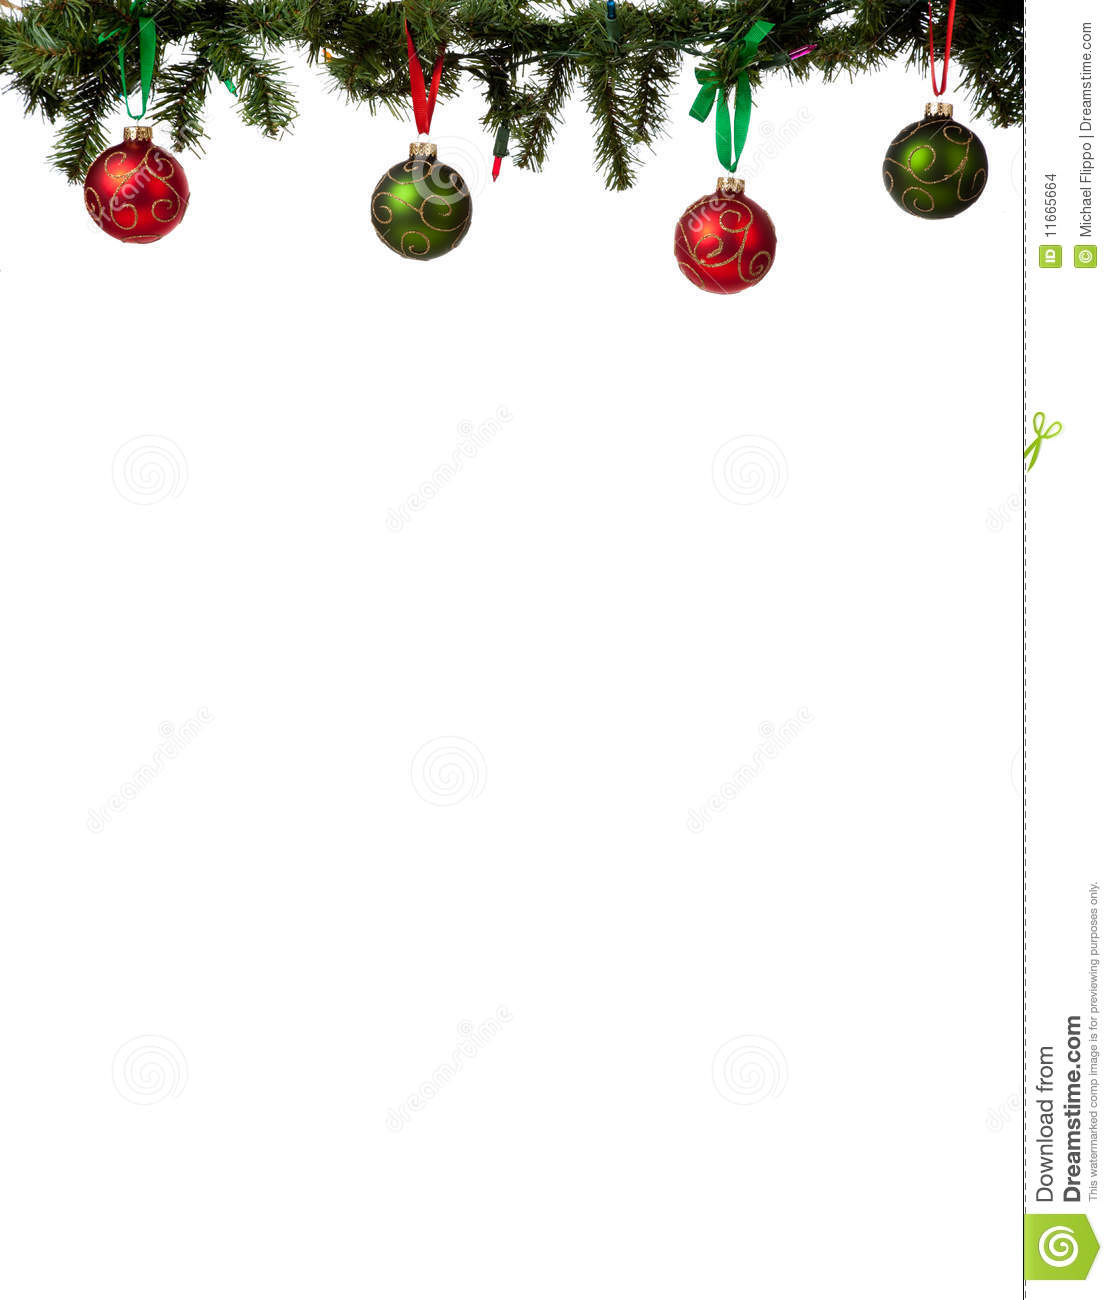 Christmas ornament border stock images image